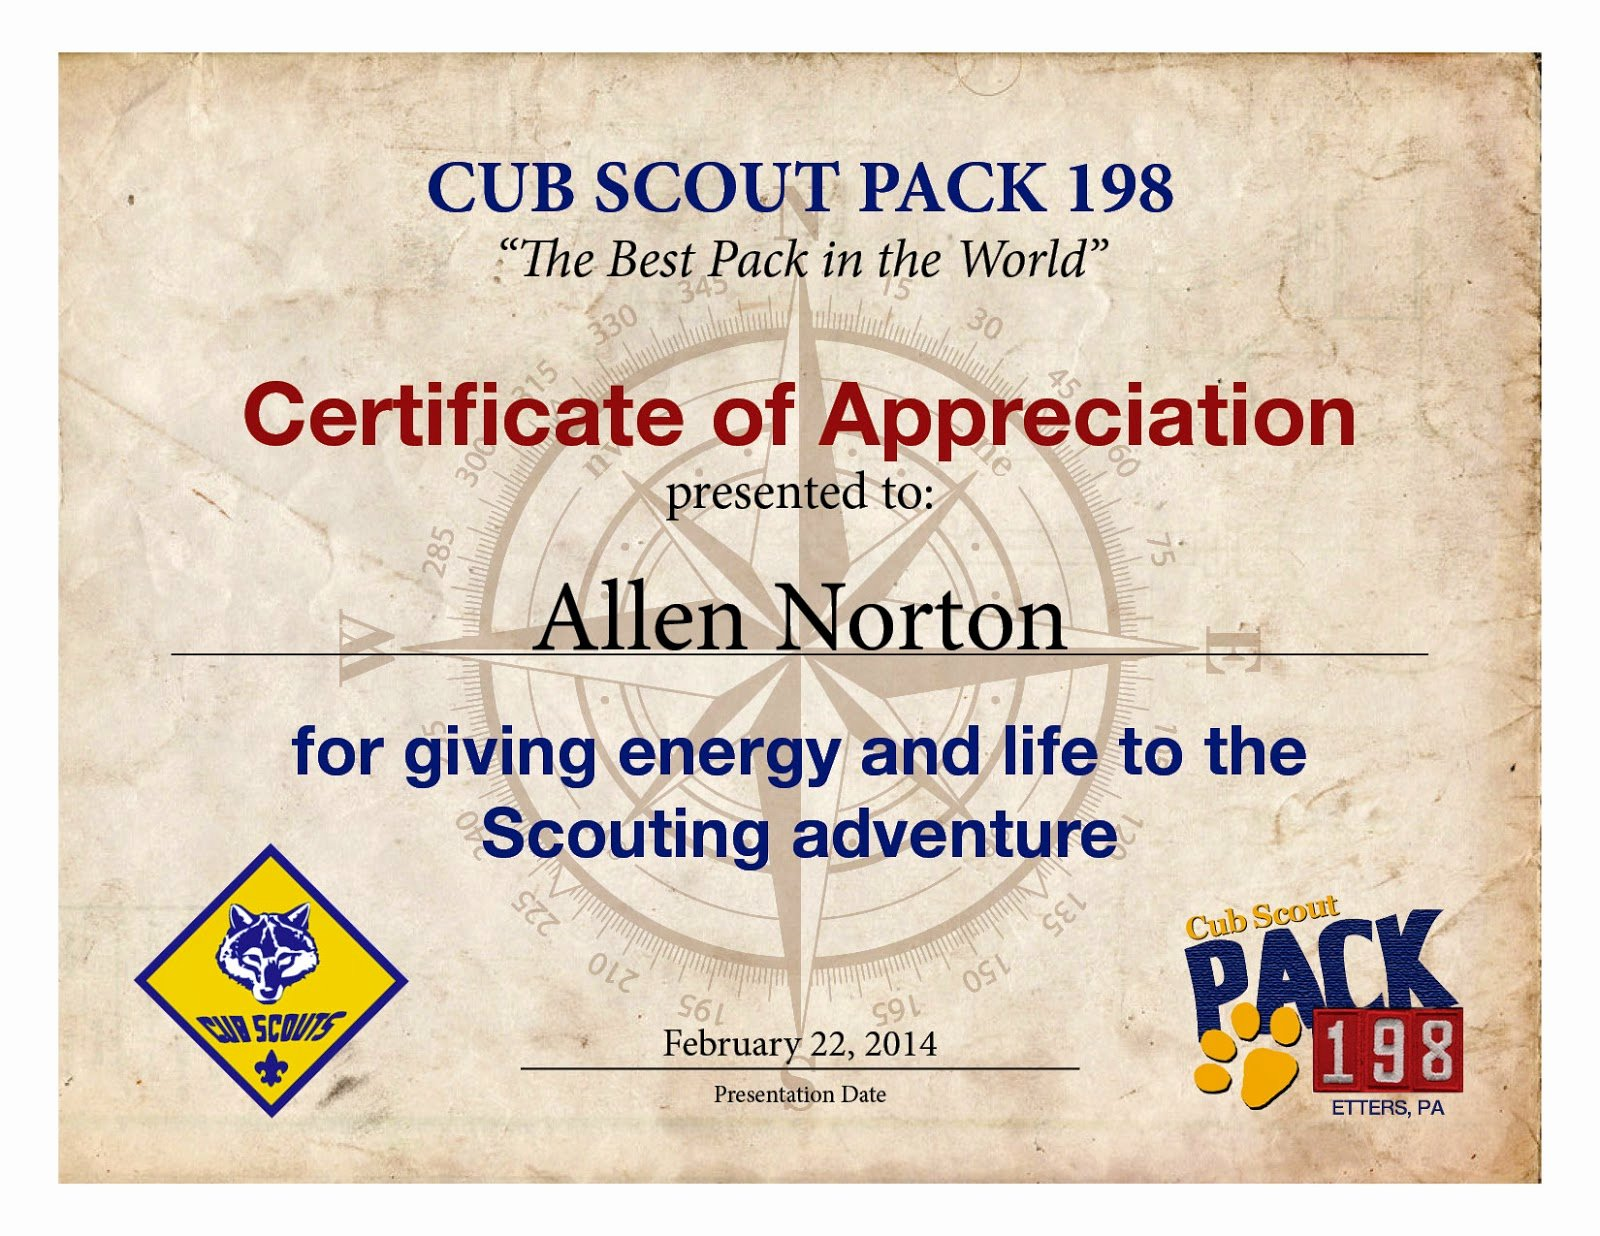 Boy Scout Certificate Of Appreciation Templates Lovely Bryson Design Studio July 2014